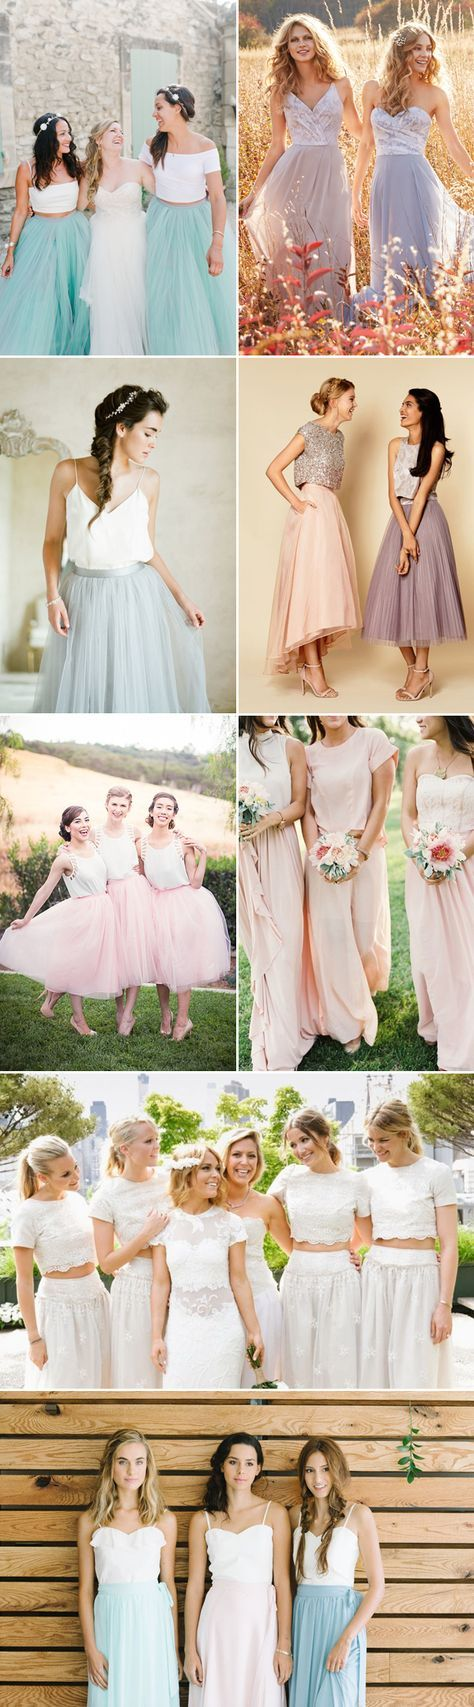 best vestidos images on pinterest party outfits flower girls